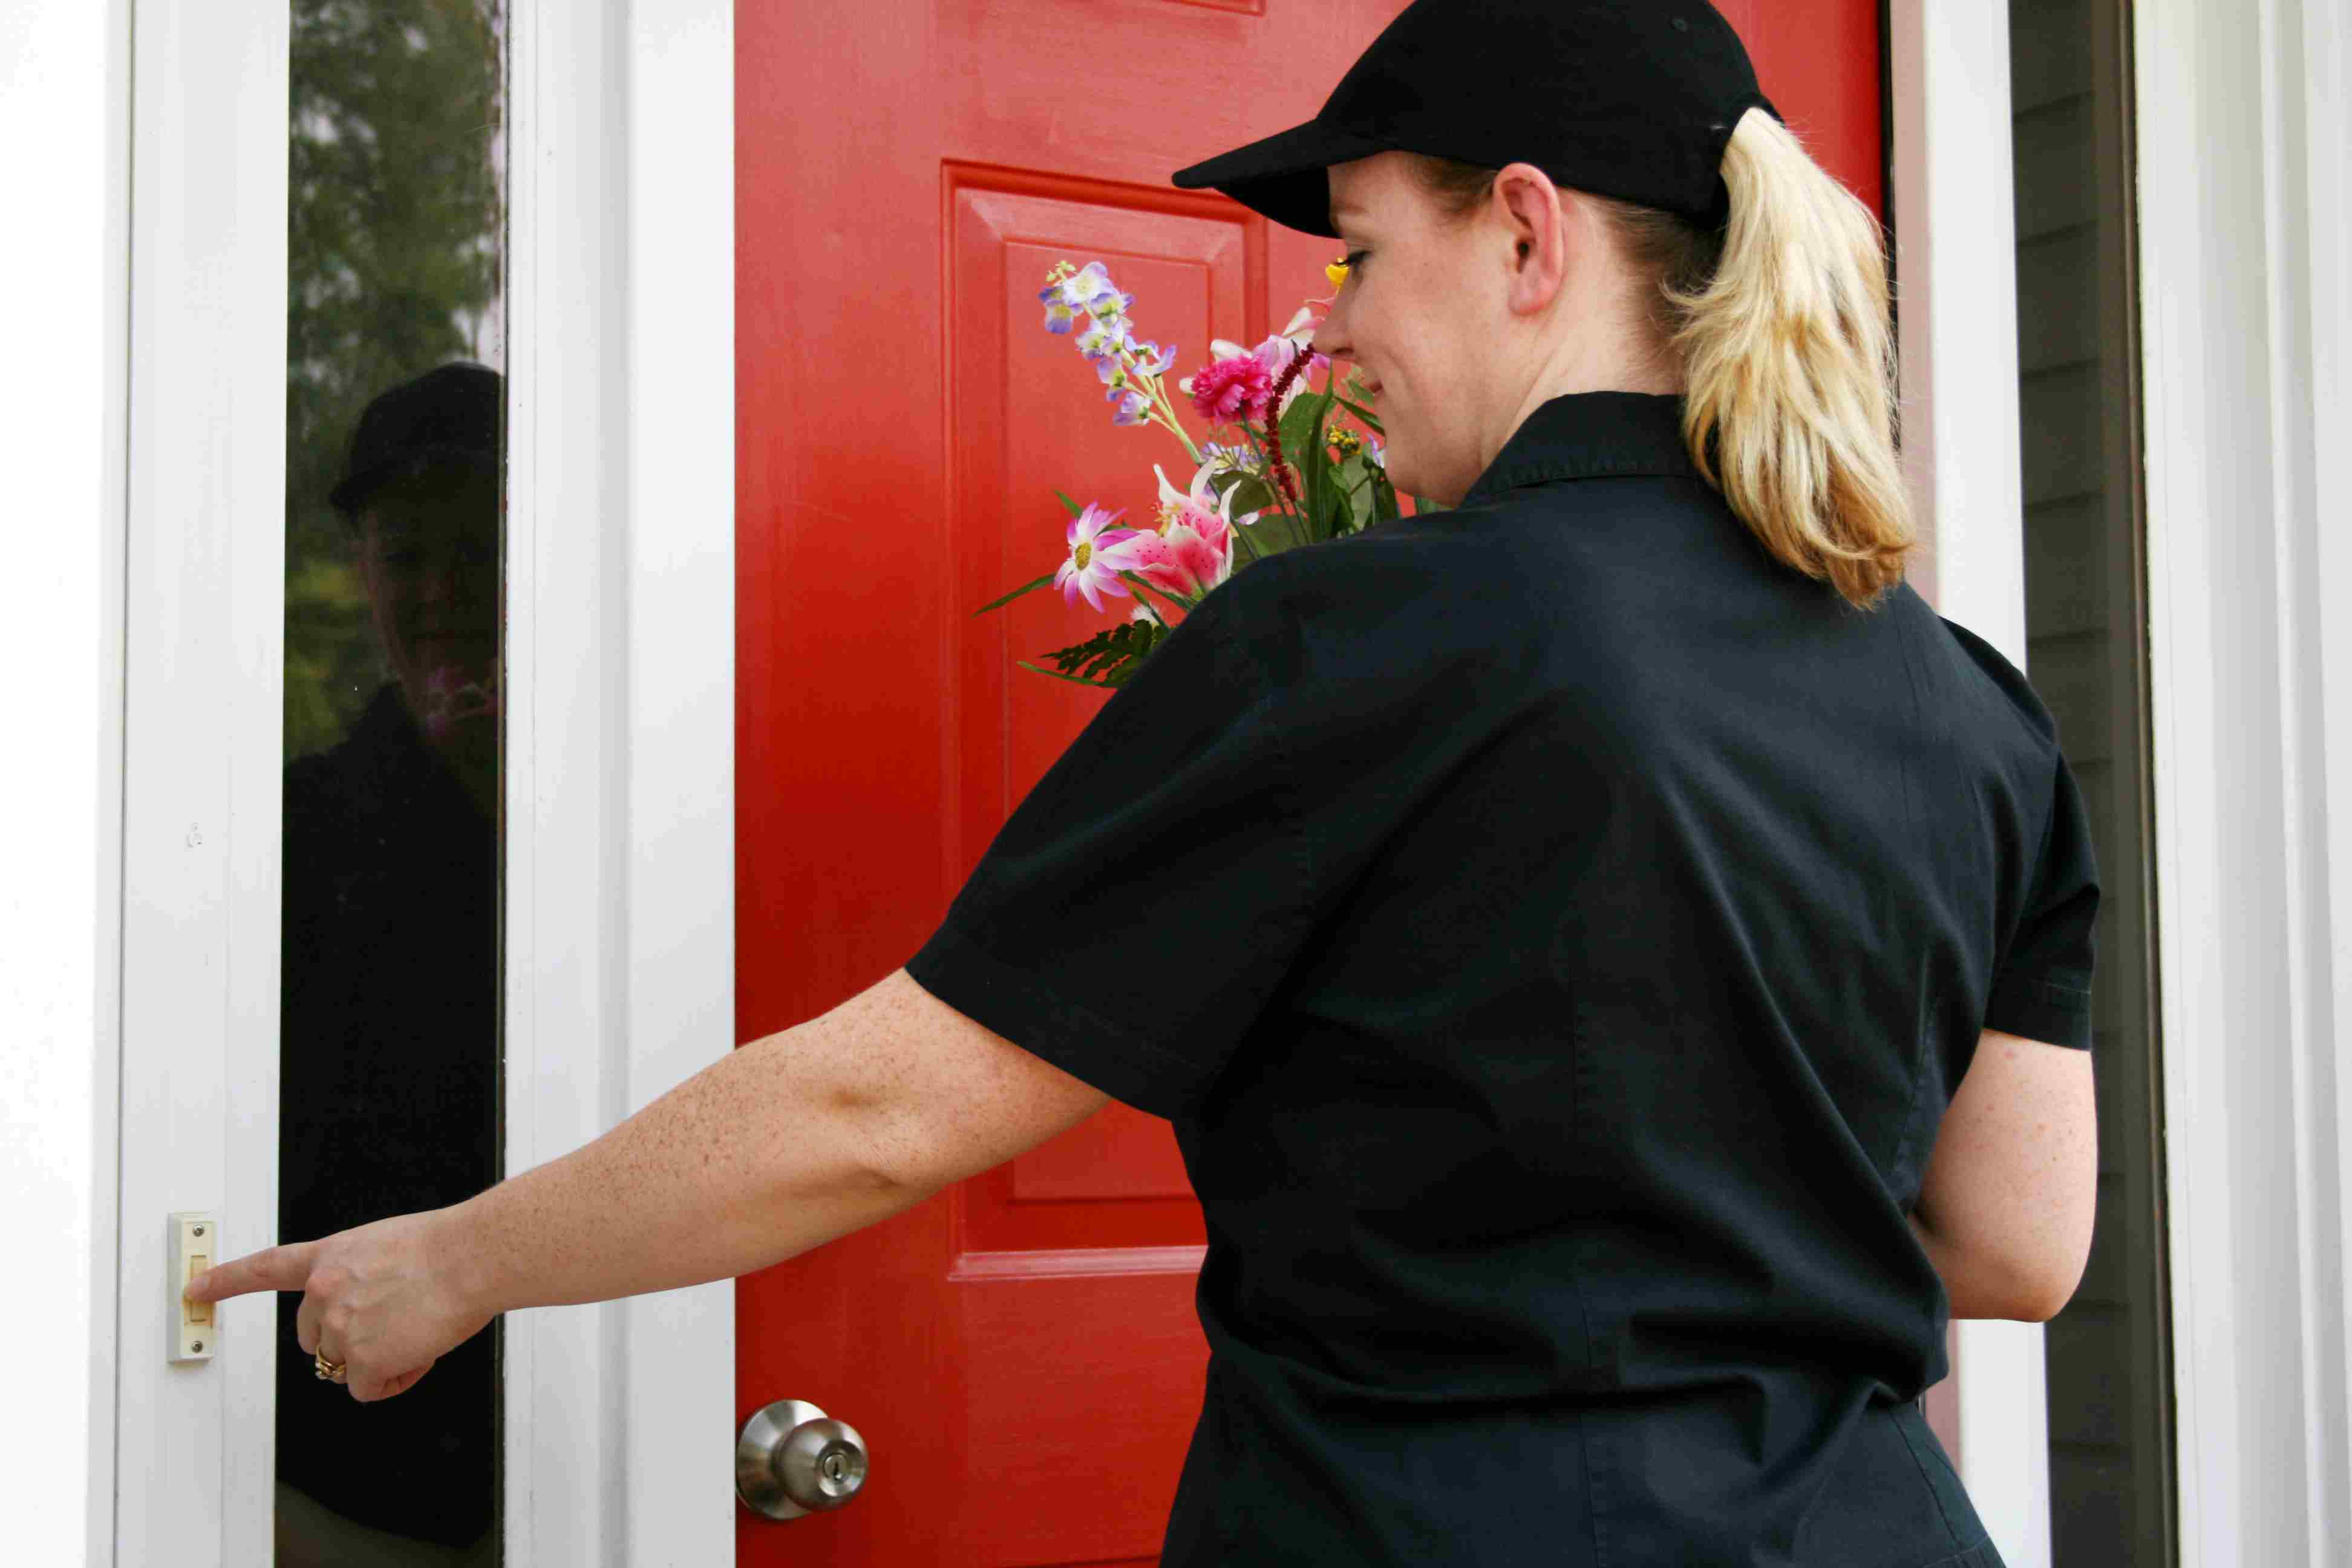 Female flower delivery person ringing doorbell with floral delivery